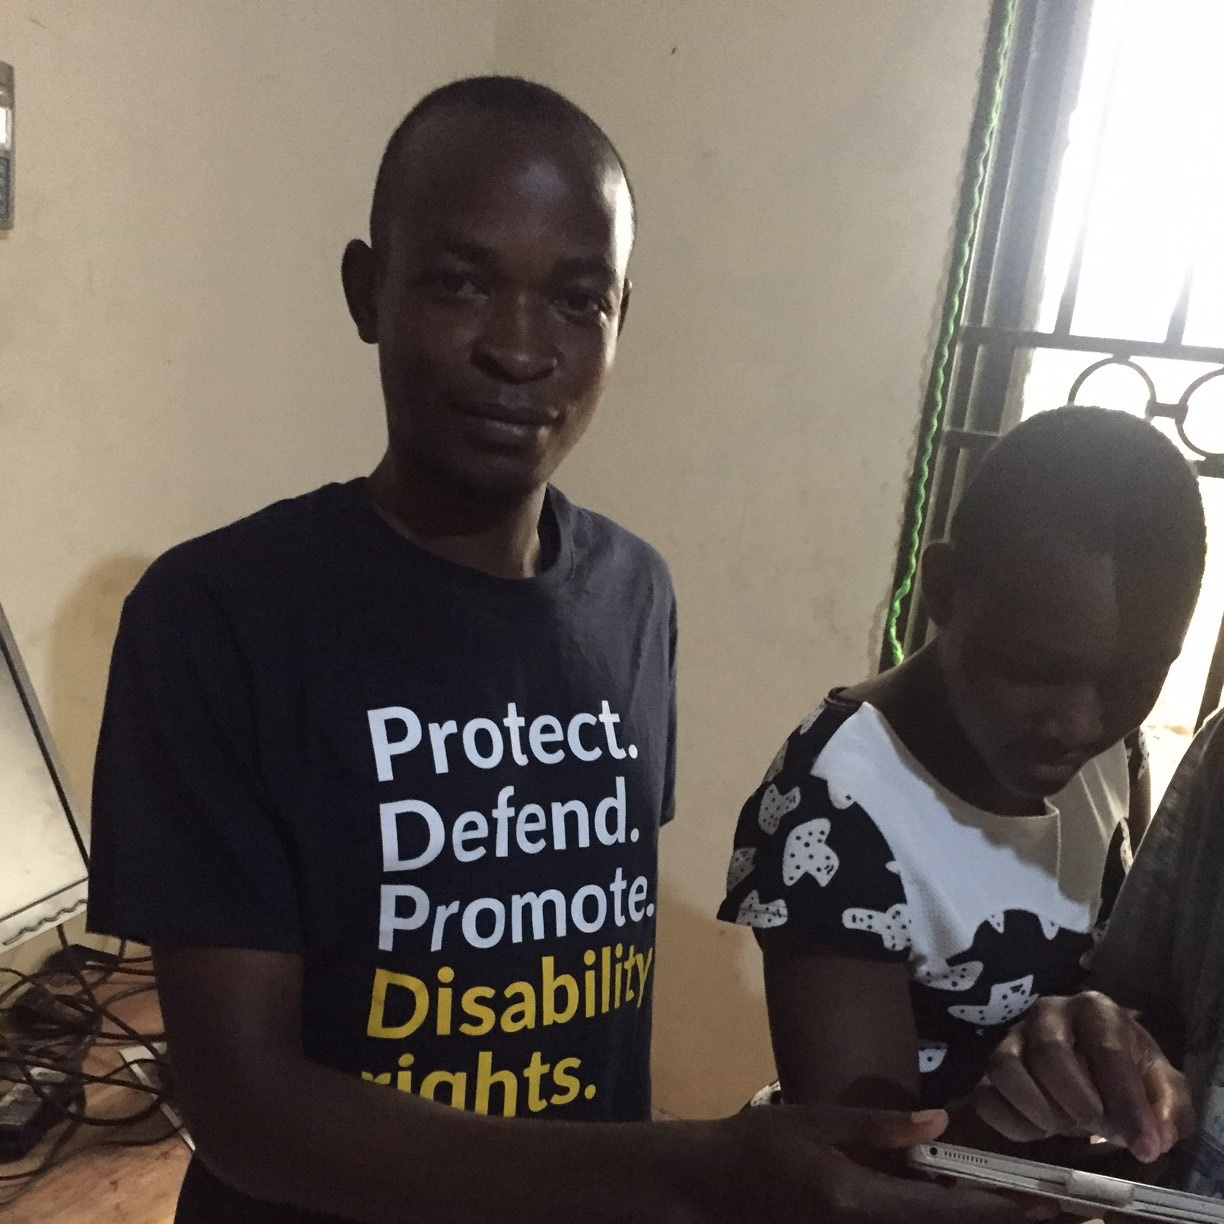 A young man assists a young woman to sign a petition with her finger on a tablet screen.